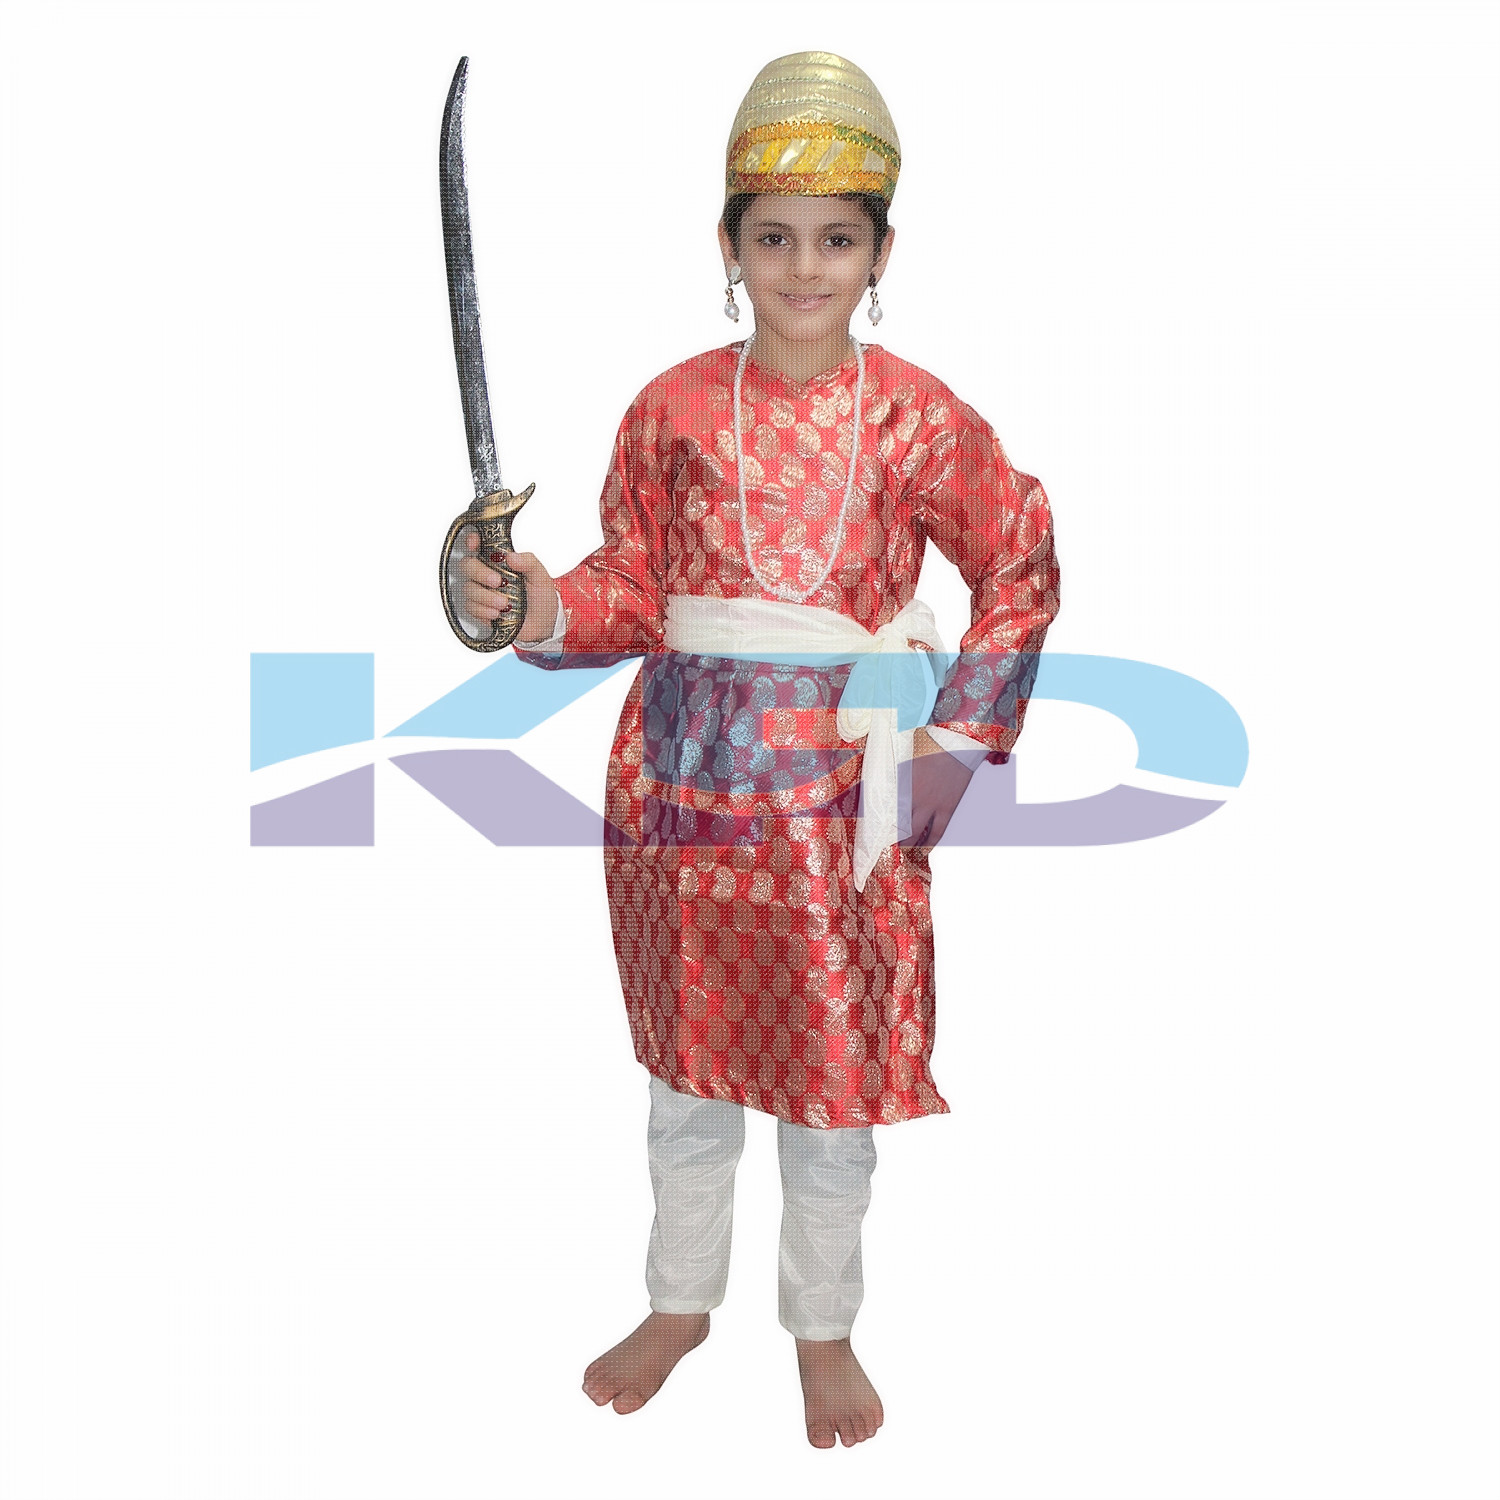 Shiva ji Red fancy dress for kids,National Hero Costume for Annual function/Theme Party/Competition/Stage Shows/Birthday Party Dress